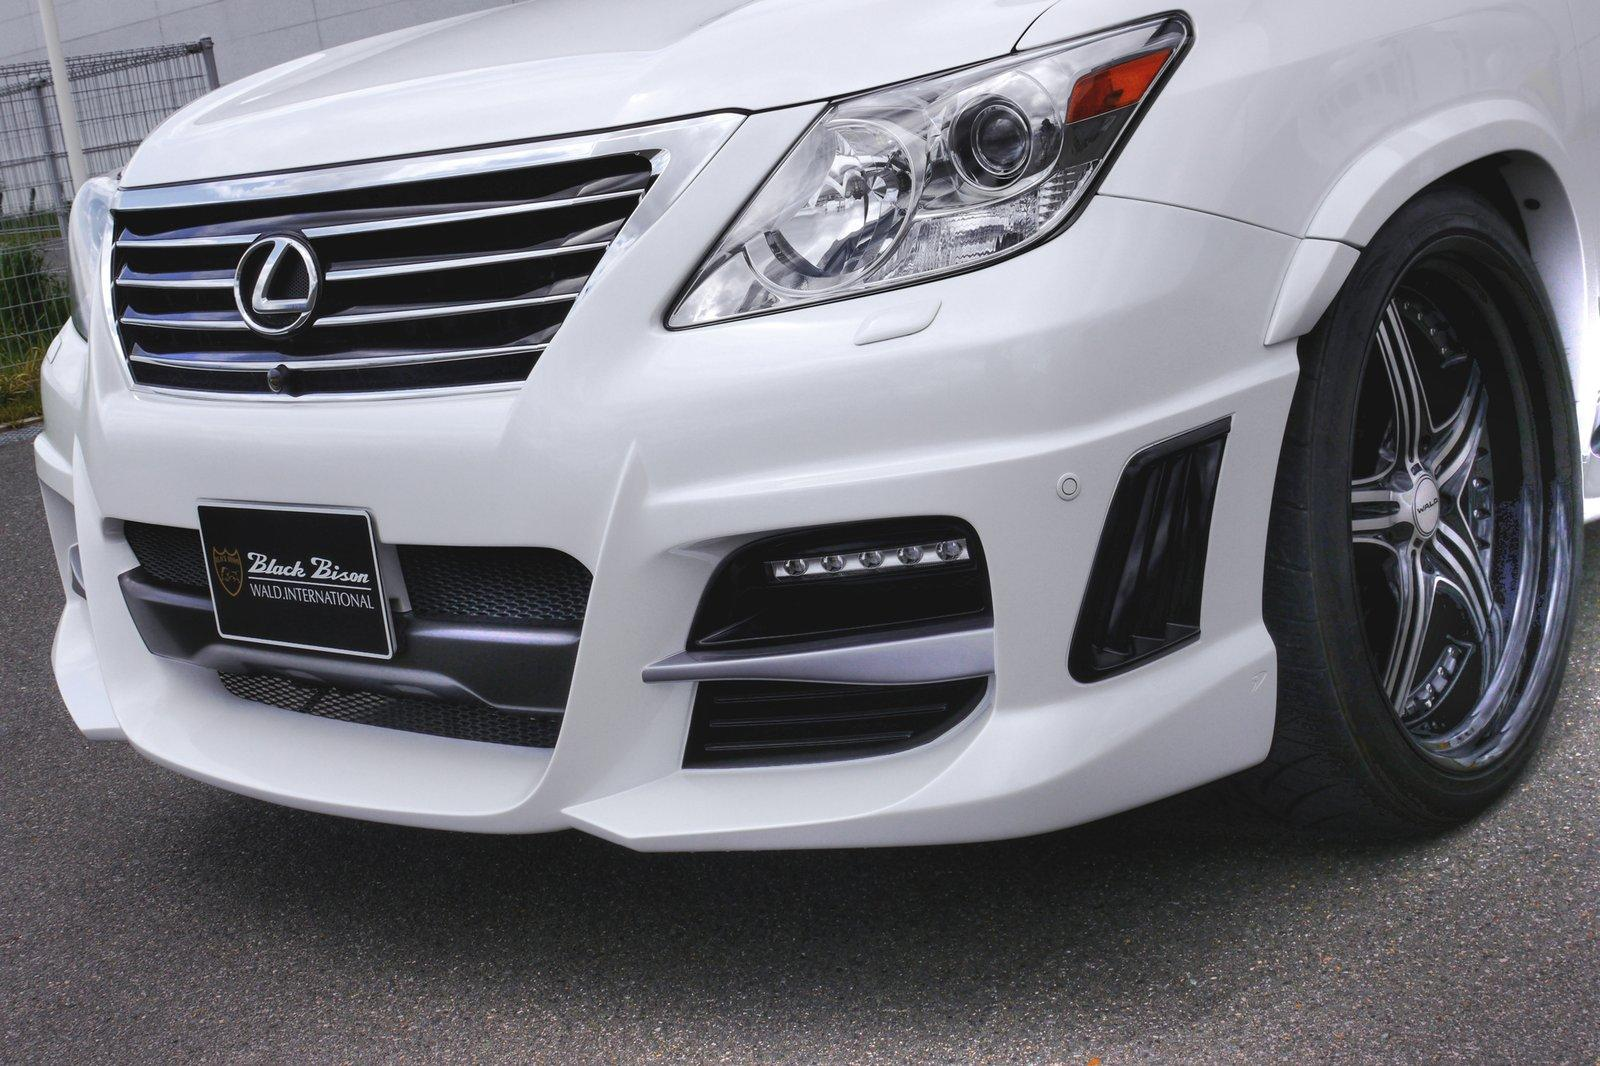 Lexus Lx570 With Wald Sports Line Black Bison Edition An